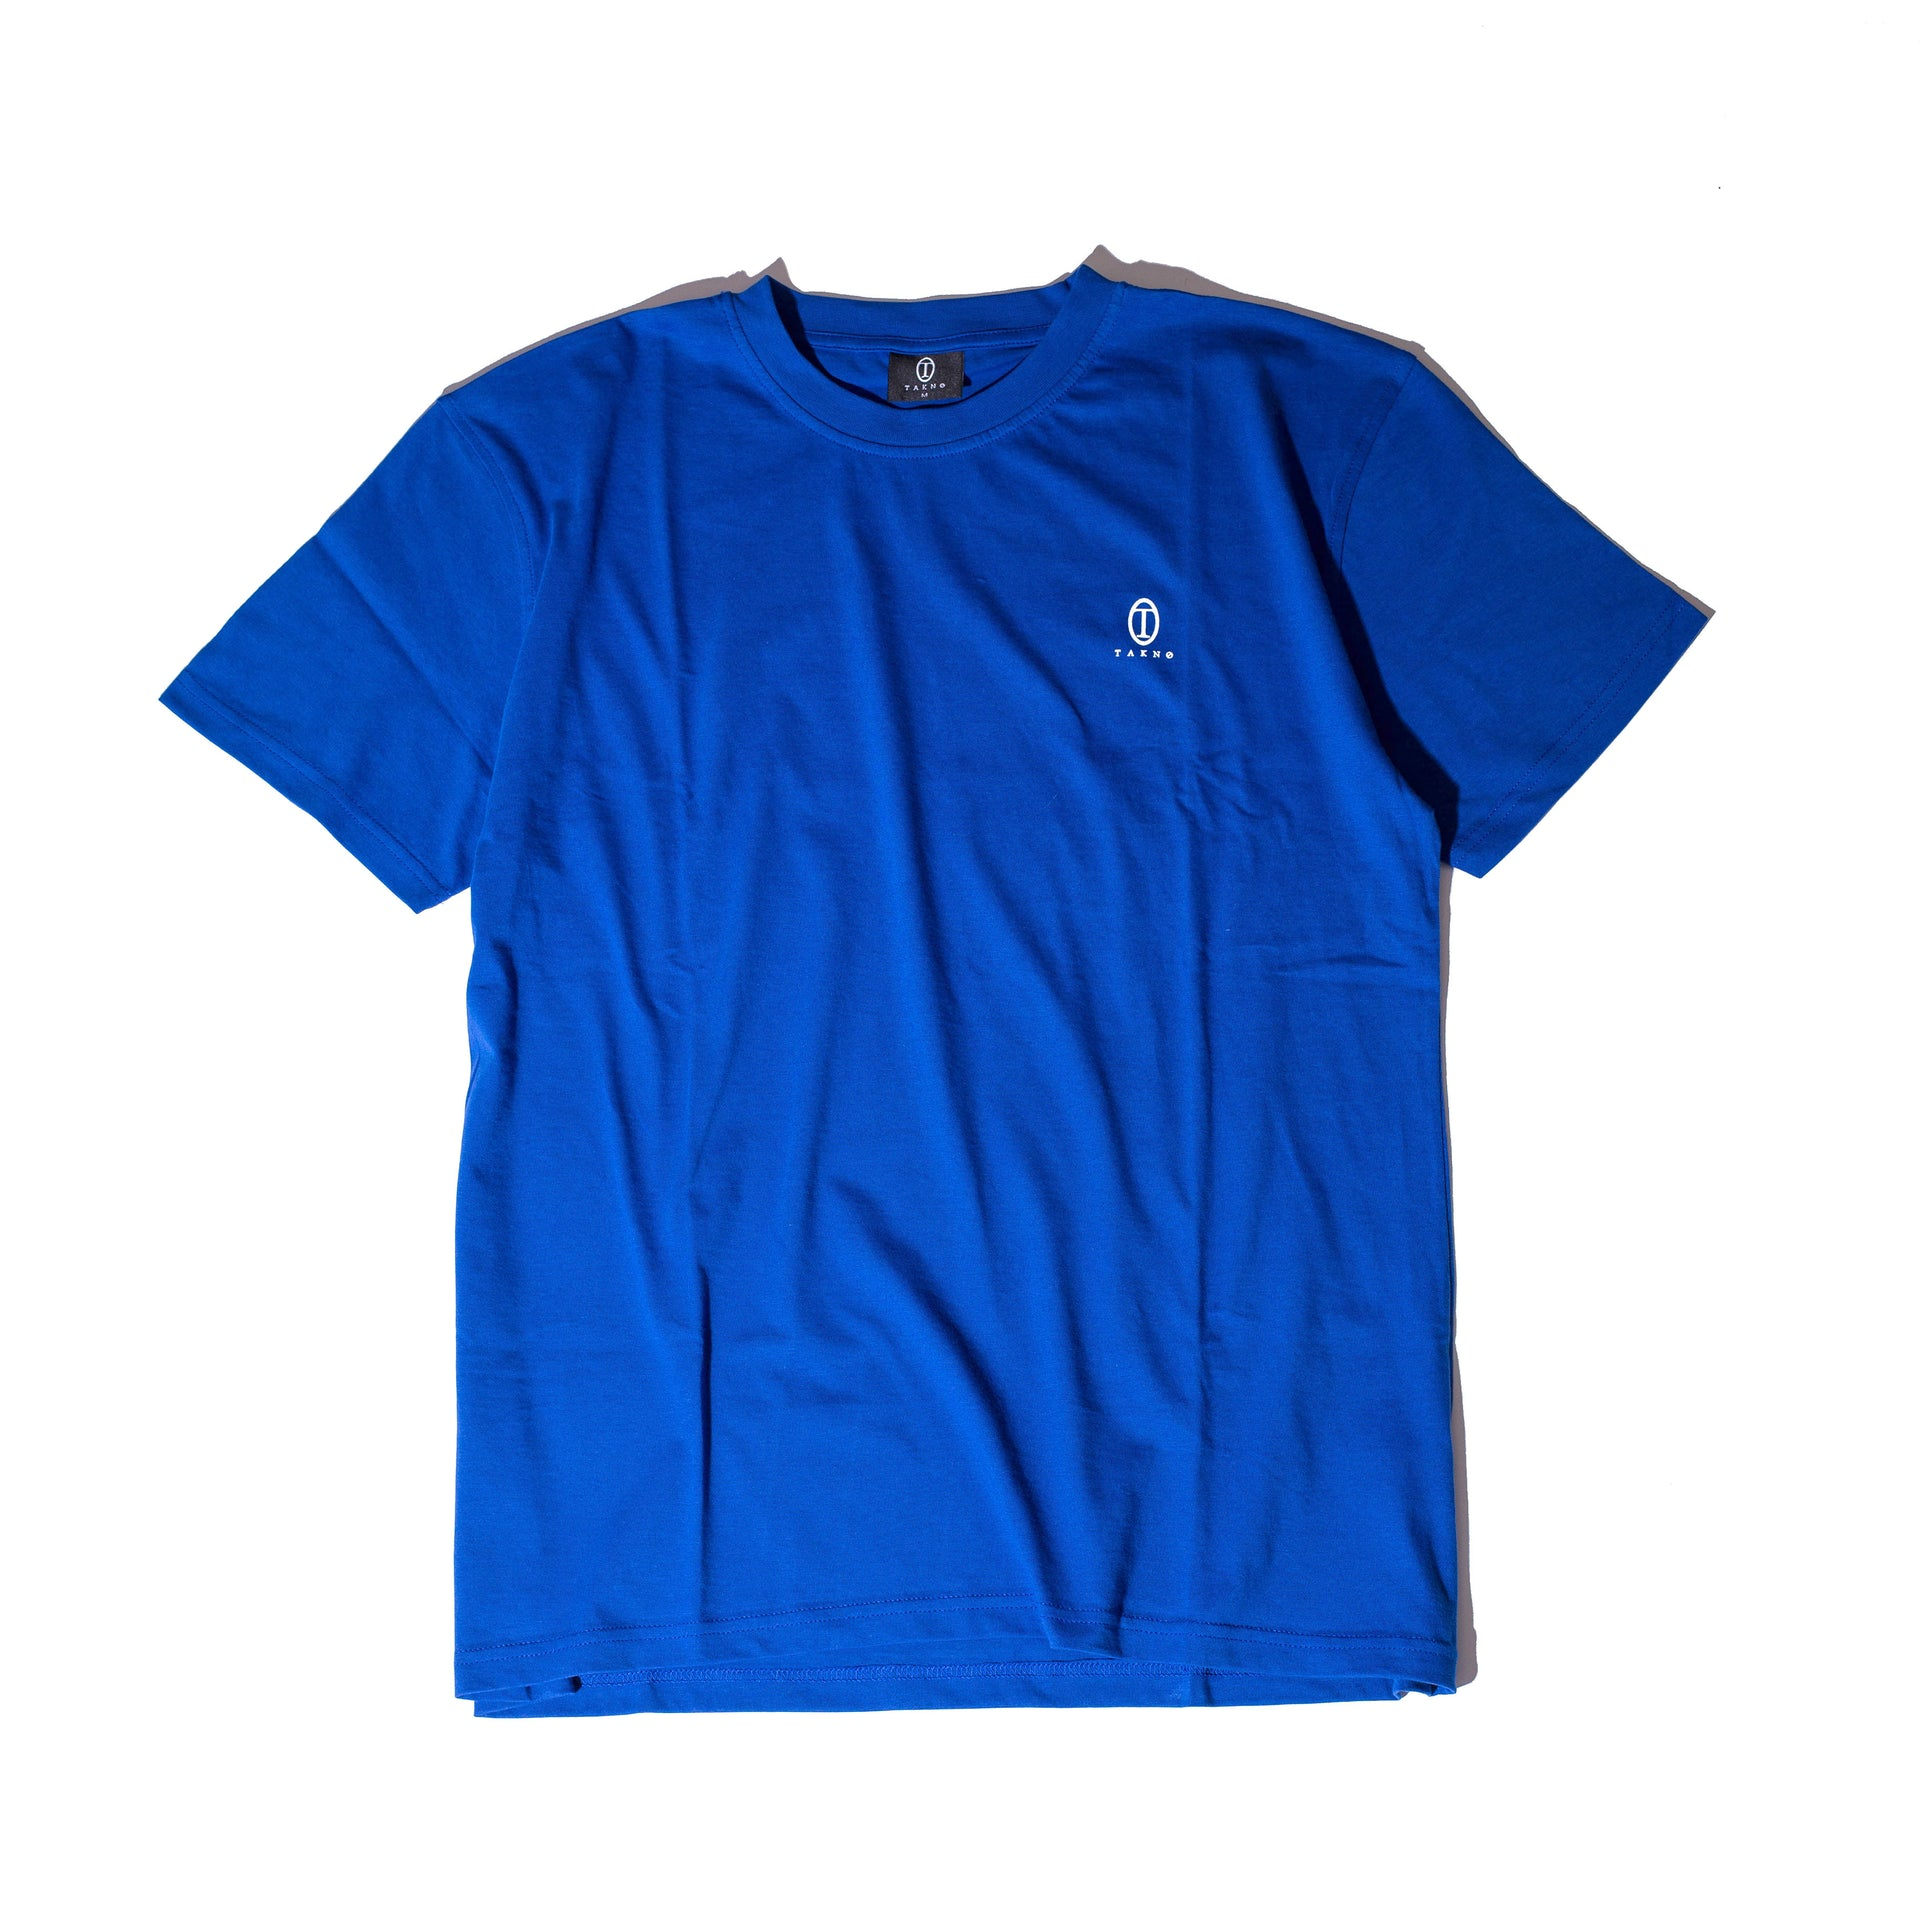 Blue Essential T-shirt